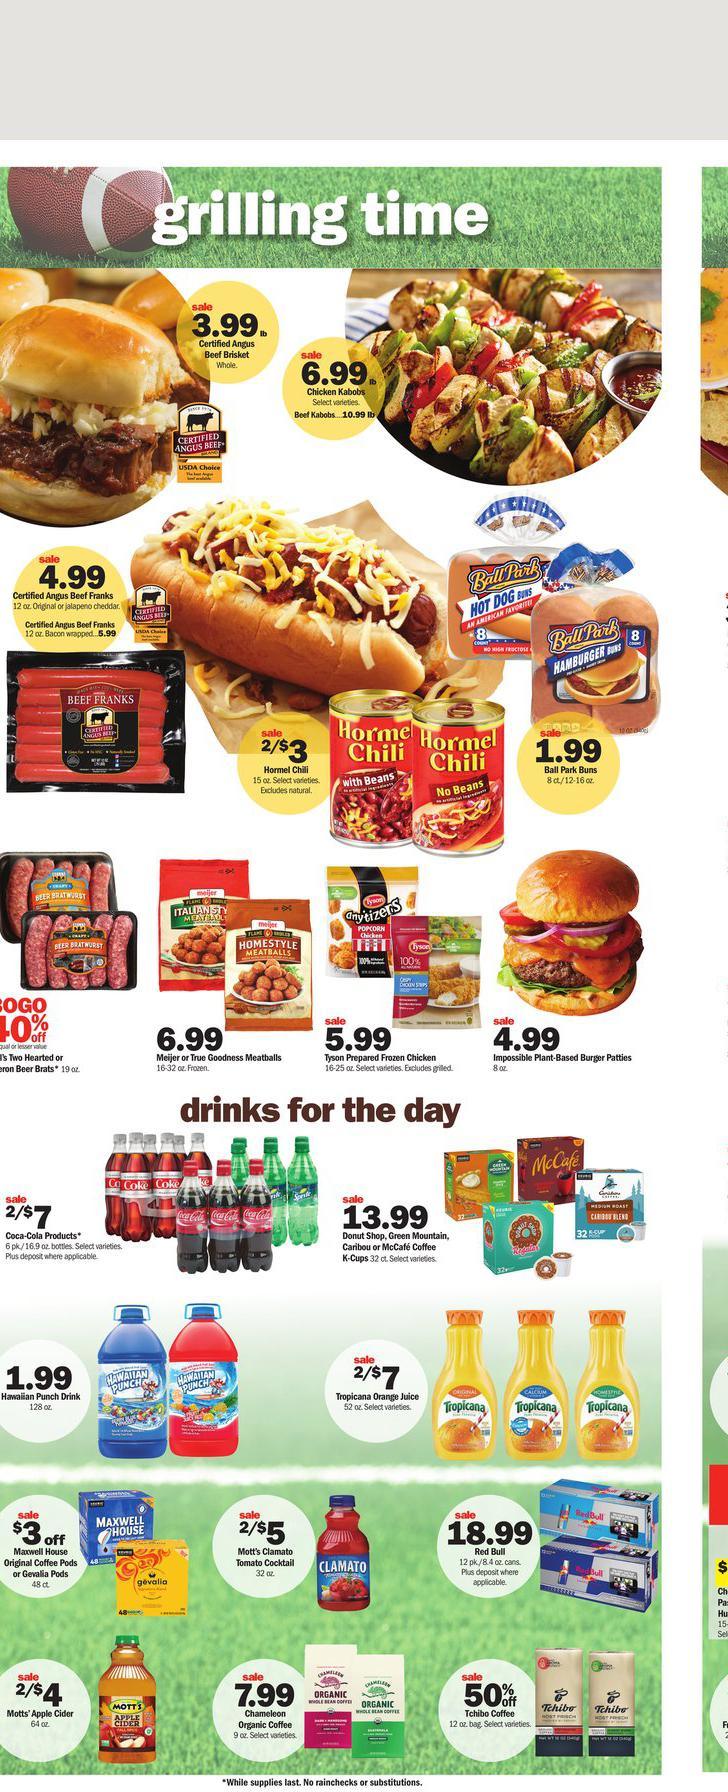 12.09.2021 Meijer ad 7. page